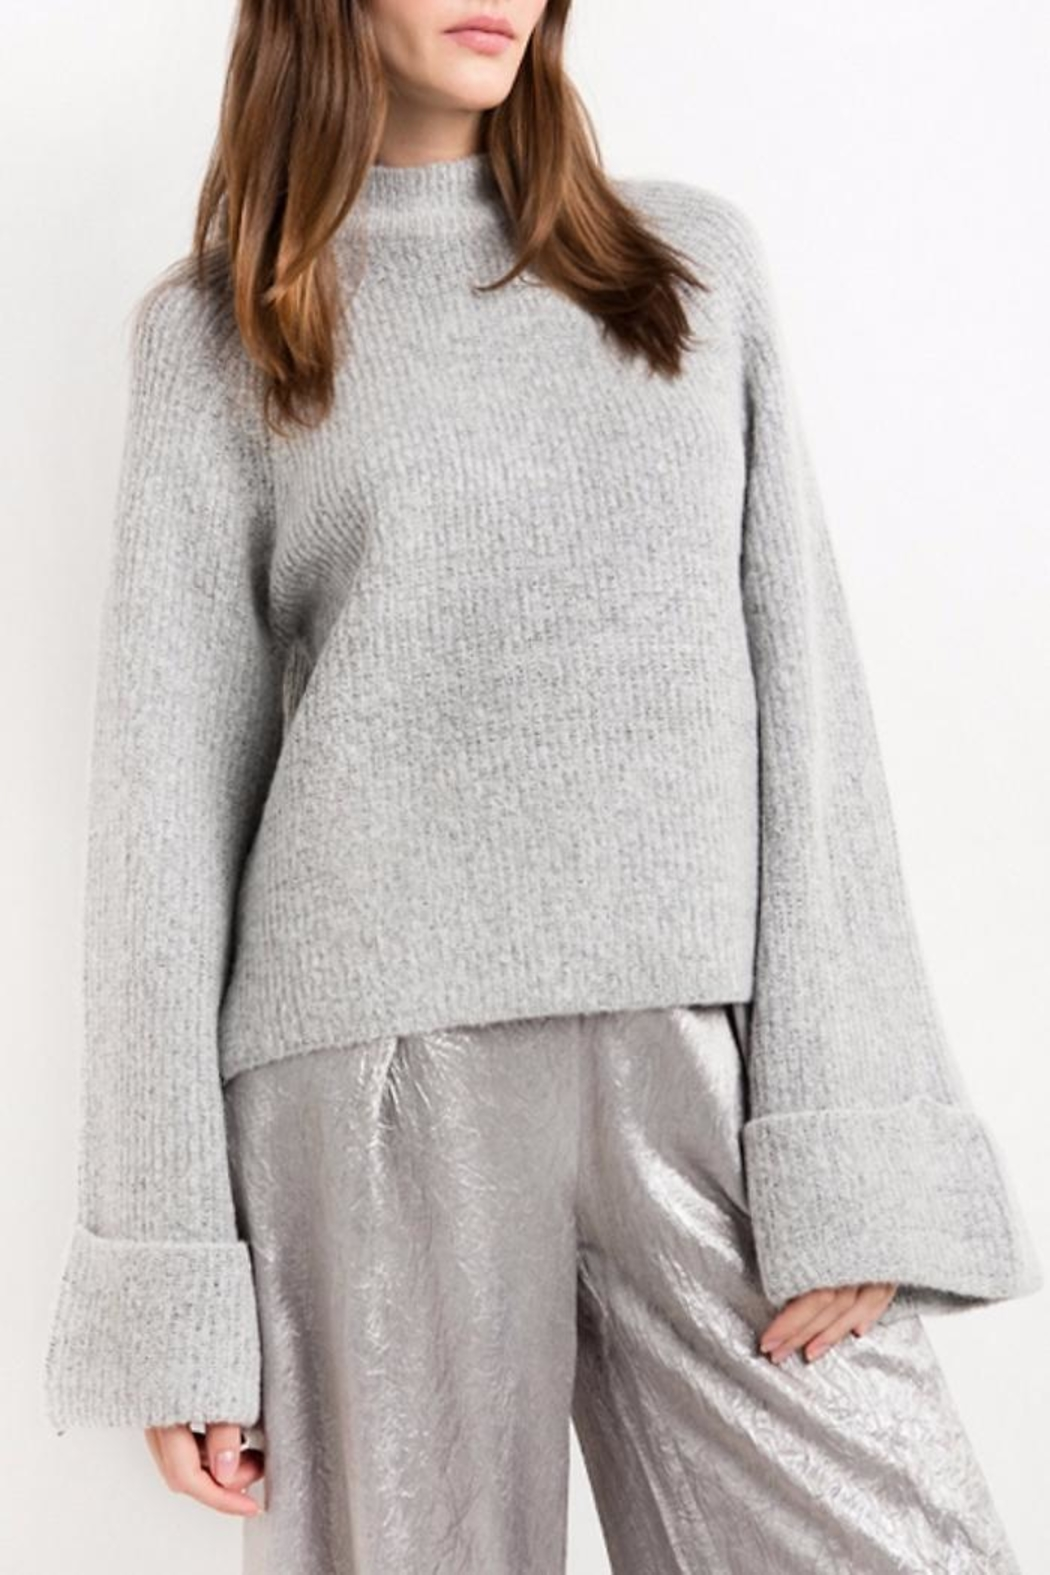 People Outfitter Go Softly Sweater - Front Full Image